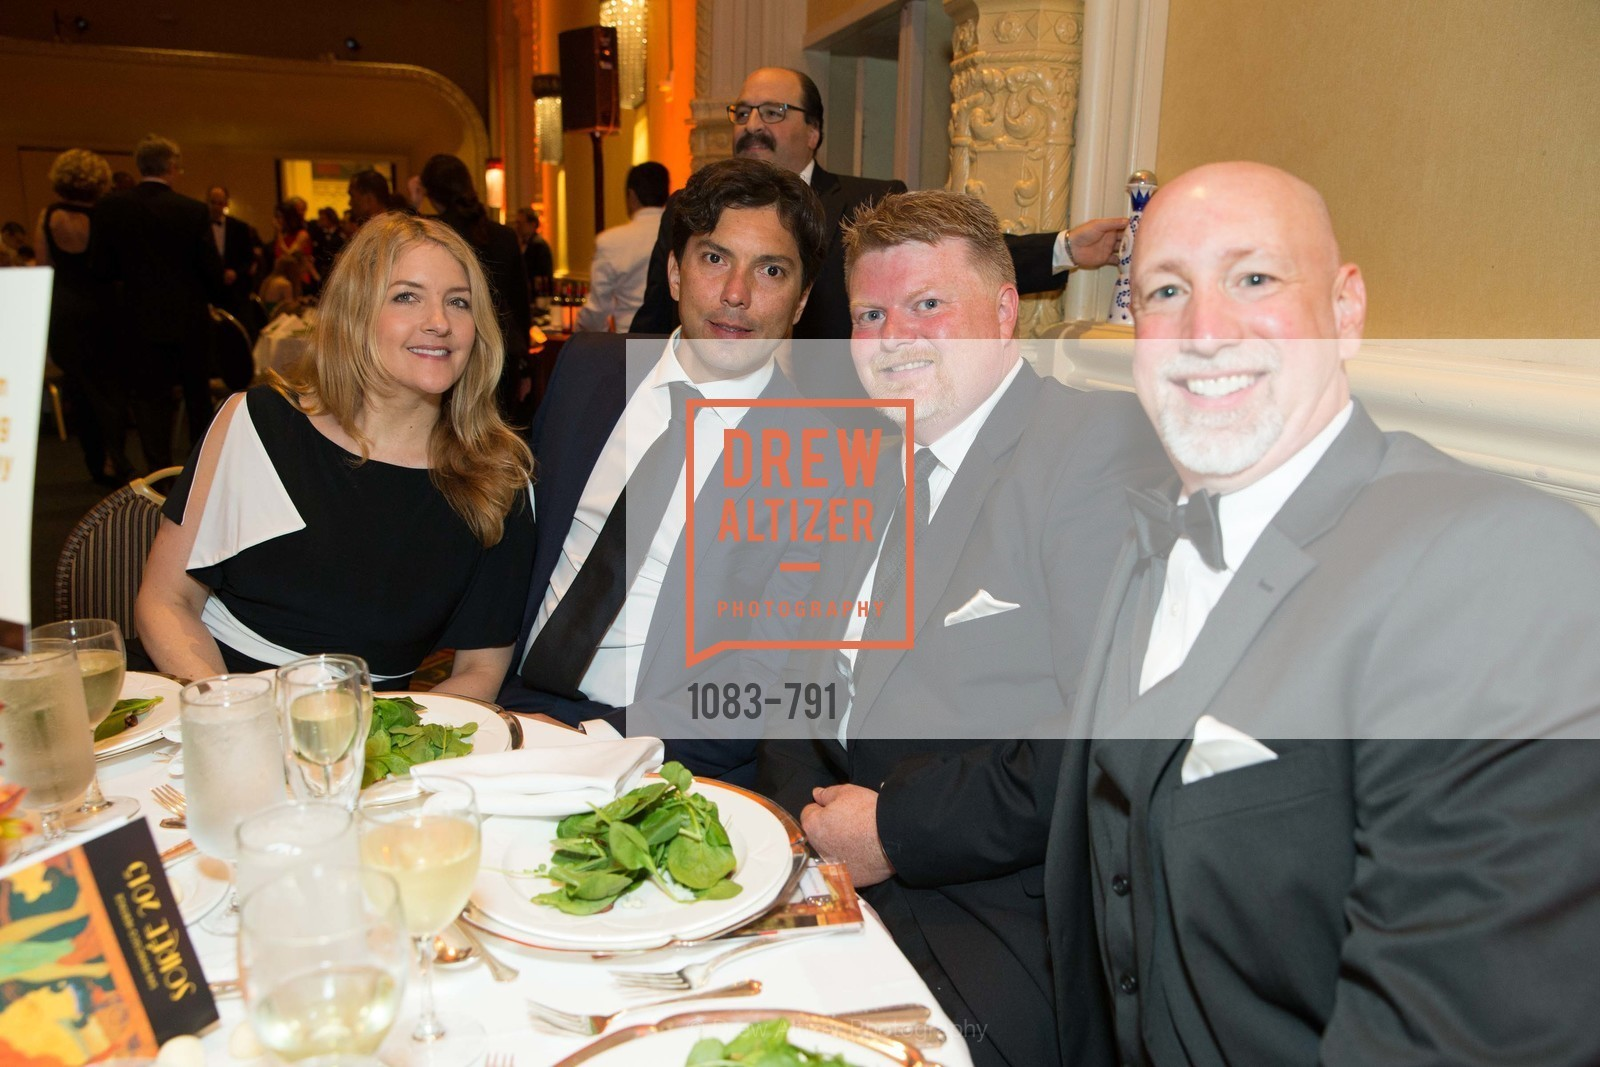 Jill Helffenstein, Terry Kelley, Jesse Cowdrey, James Landman, SAN FRANCISCO HERITAGE Soiree 2015, US, April 18th, 2015,Drew Altizer, Drew Altizer Photography, full-service agency, private events, San Francisco photographer, photographer california